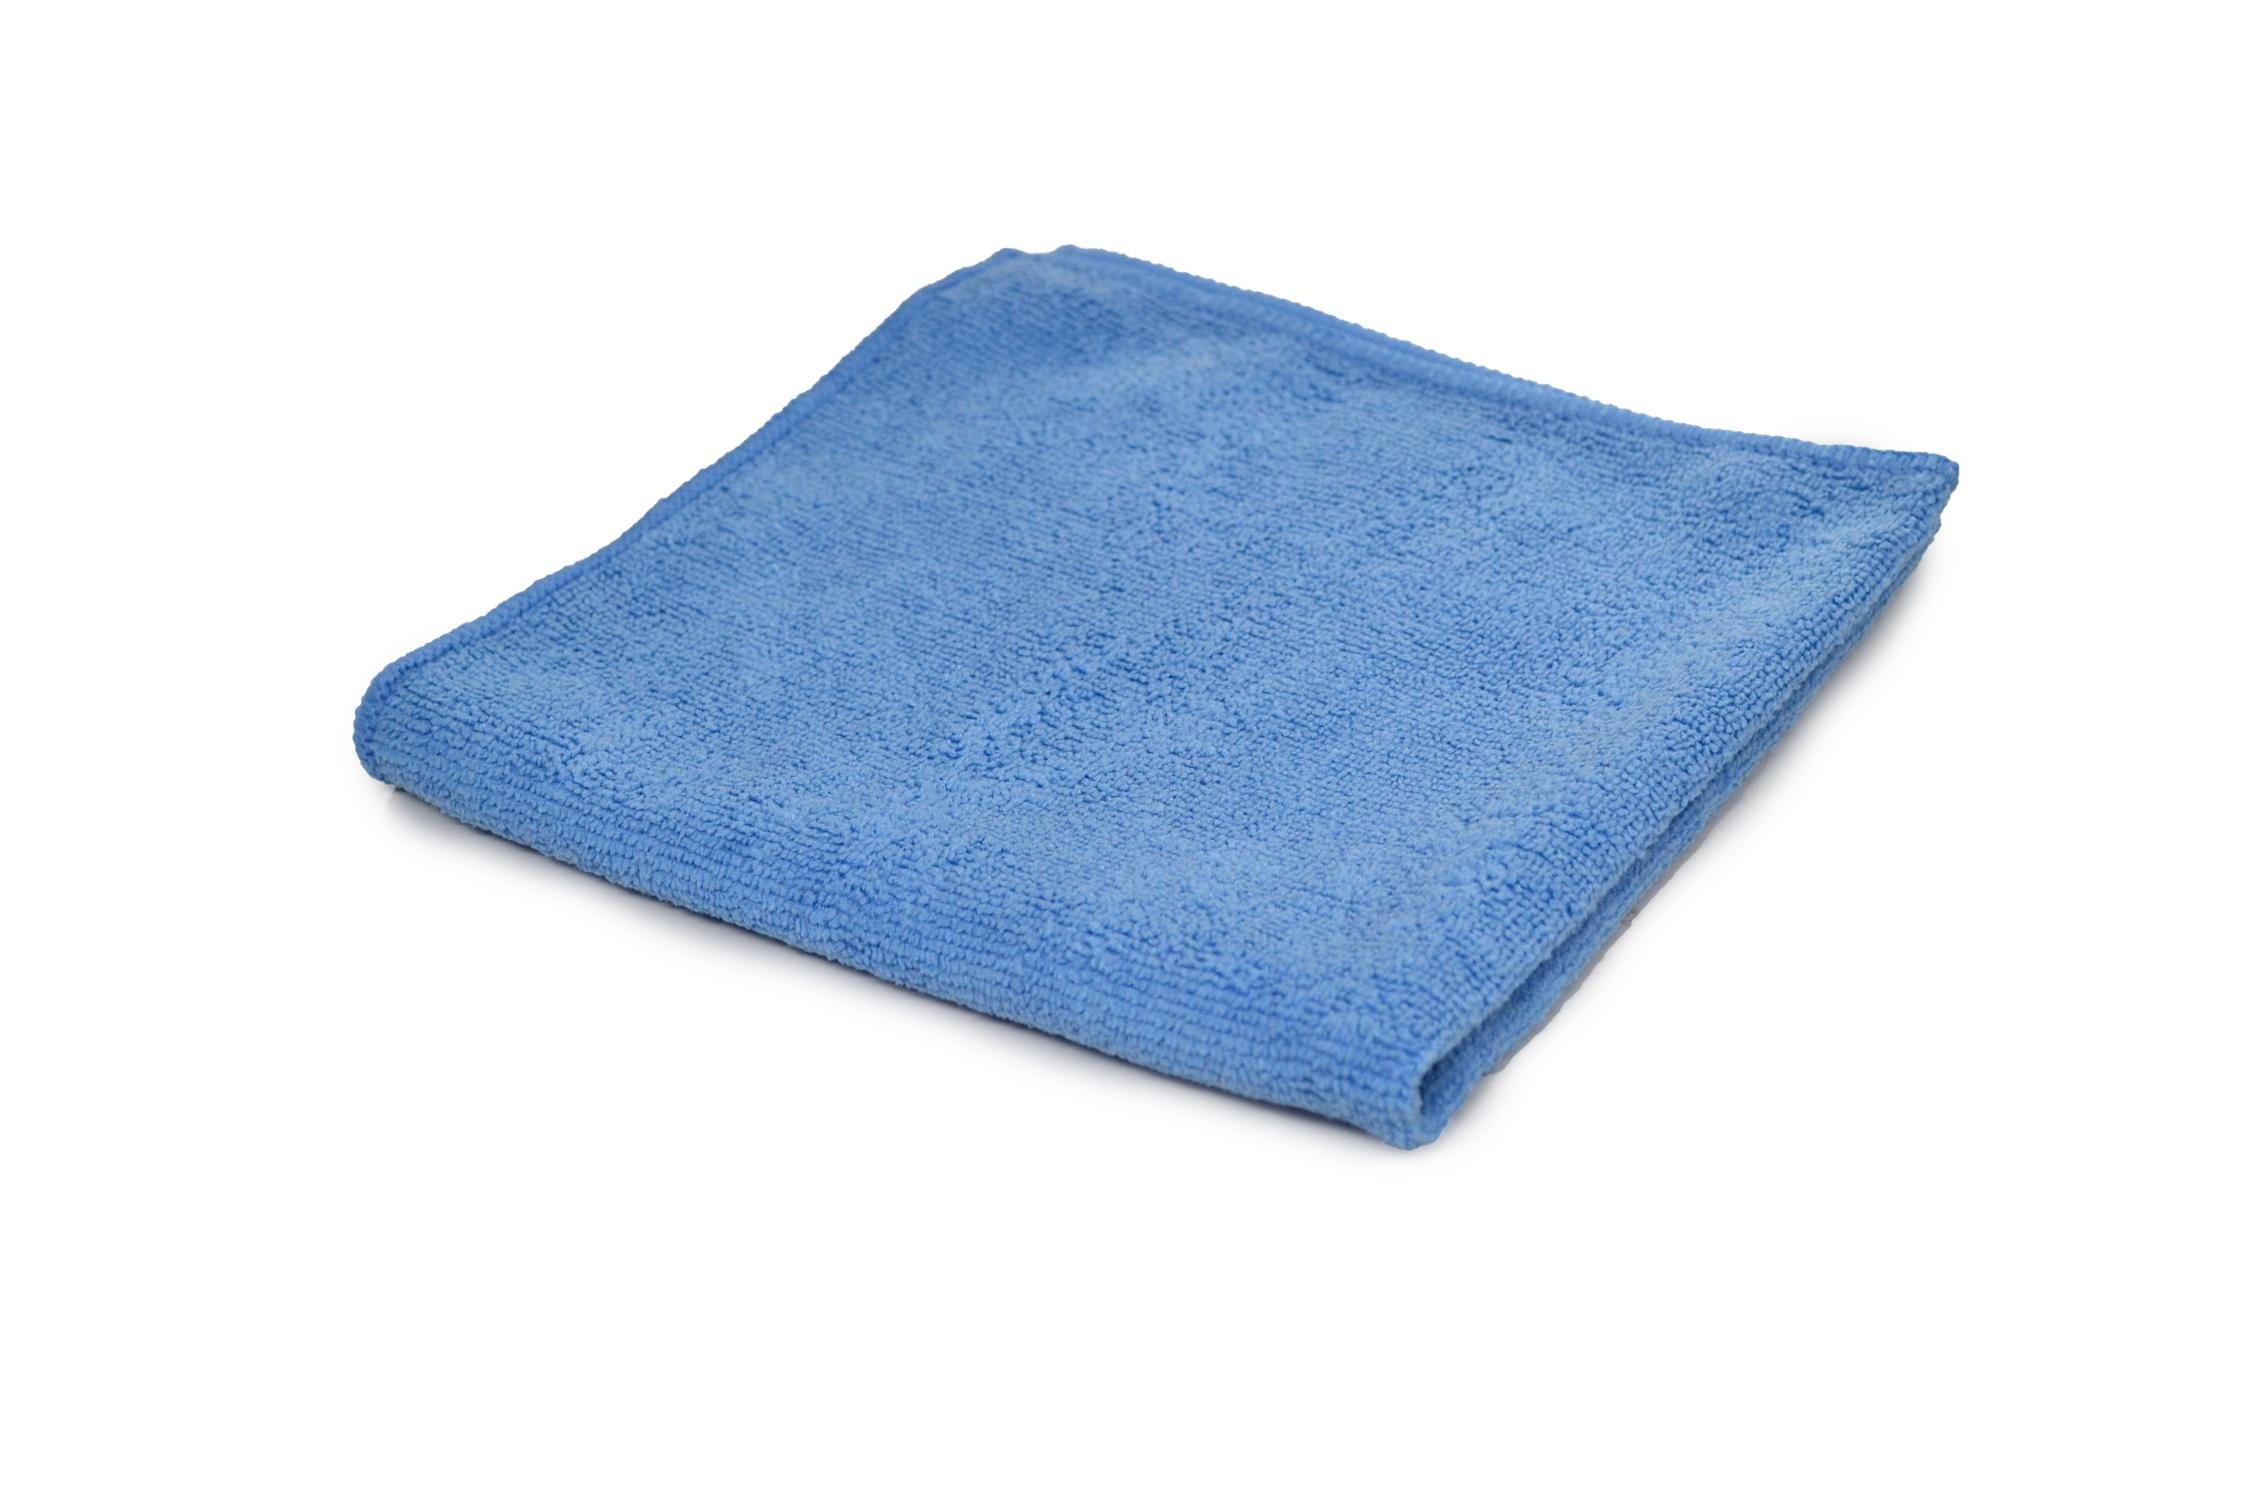 Pro-Clean Basics A73117 Microfiber General Purpose Cleaning Cloth Pallet, Light Weight, 16'' x 16'' by Pro-Clean Basics